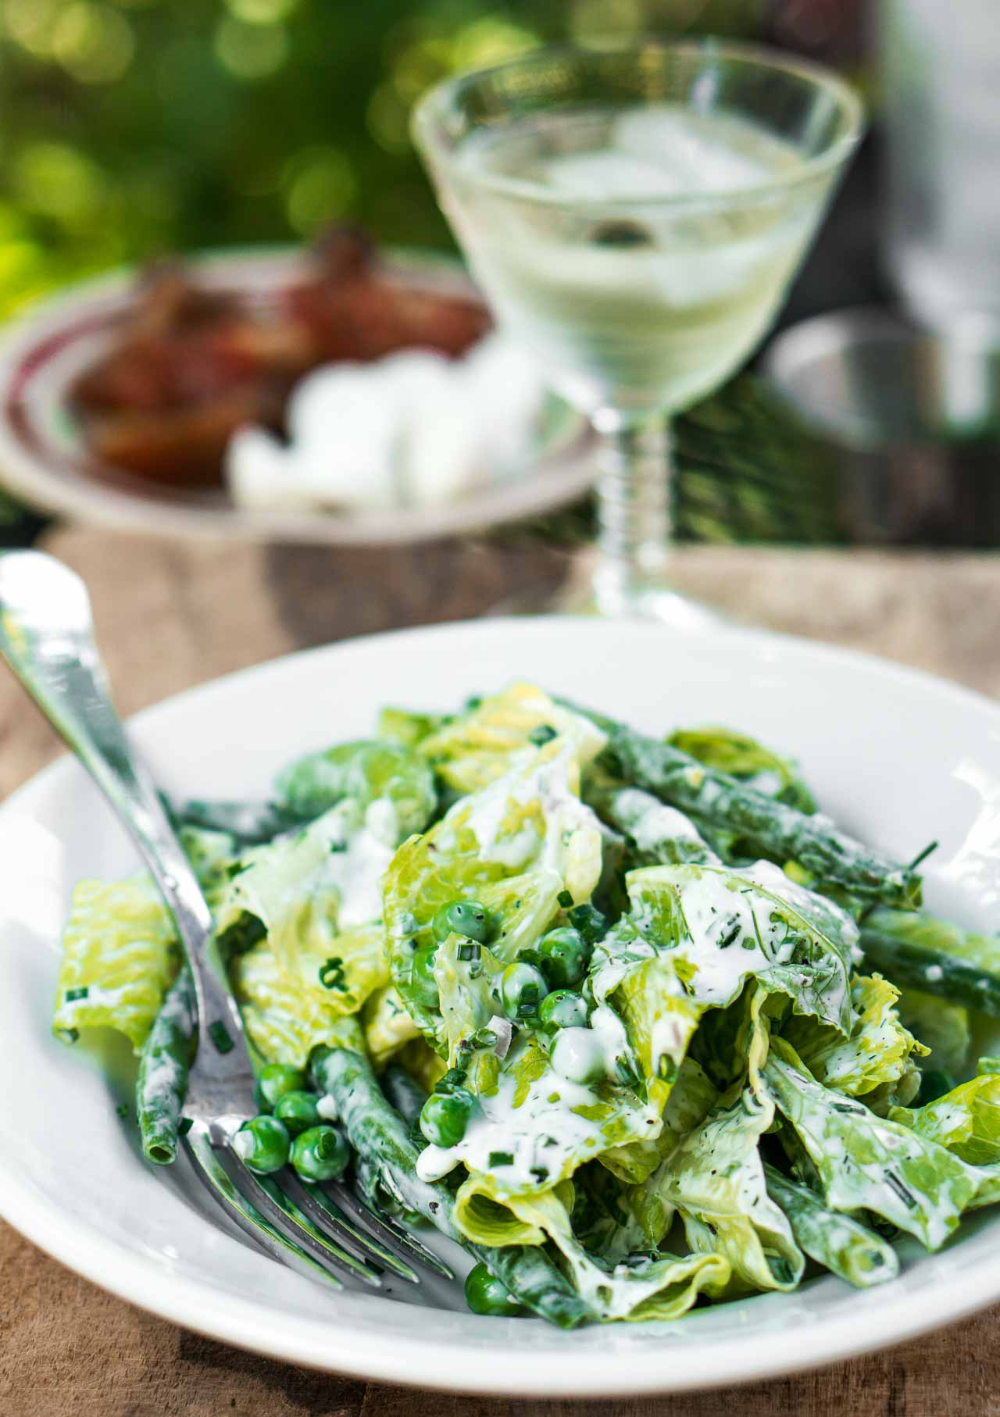 Green Salad With Peas Beans And Buttermilk Ranch Dressing Recipe Buttermilk Ranch Dressing Green Salad Green Beans